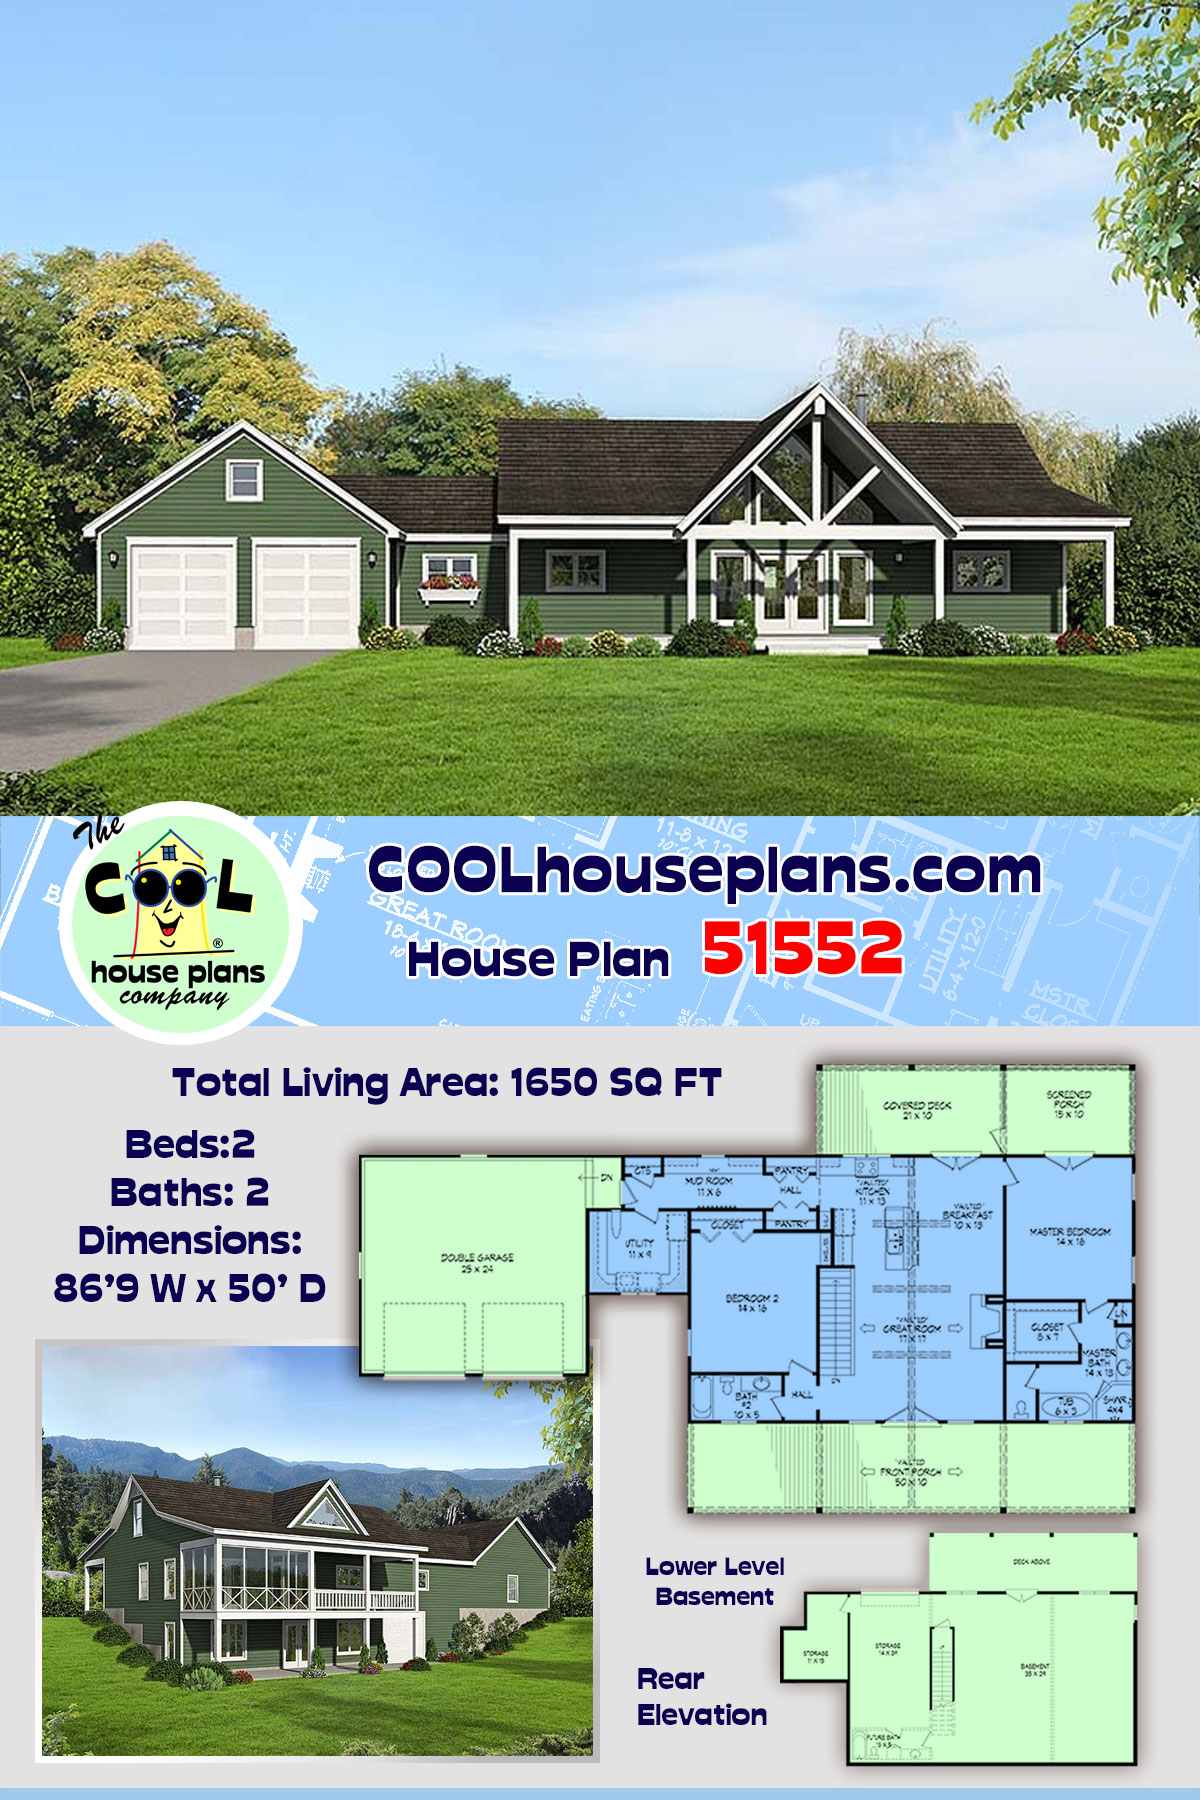 Contemporary, Country House Plan 51552 with 2 Beds, 2 Baths, 2 Car Garage